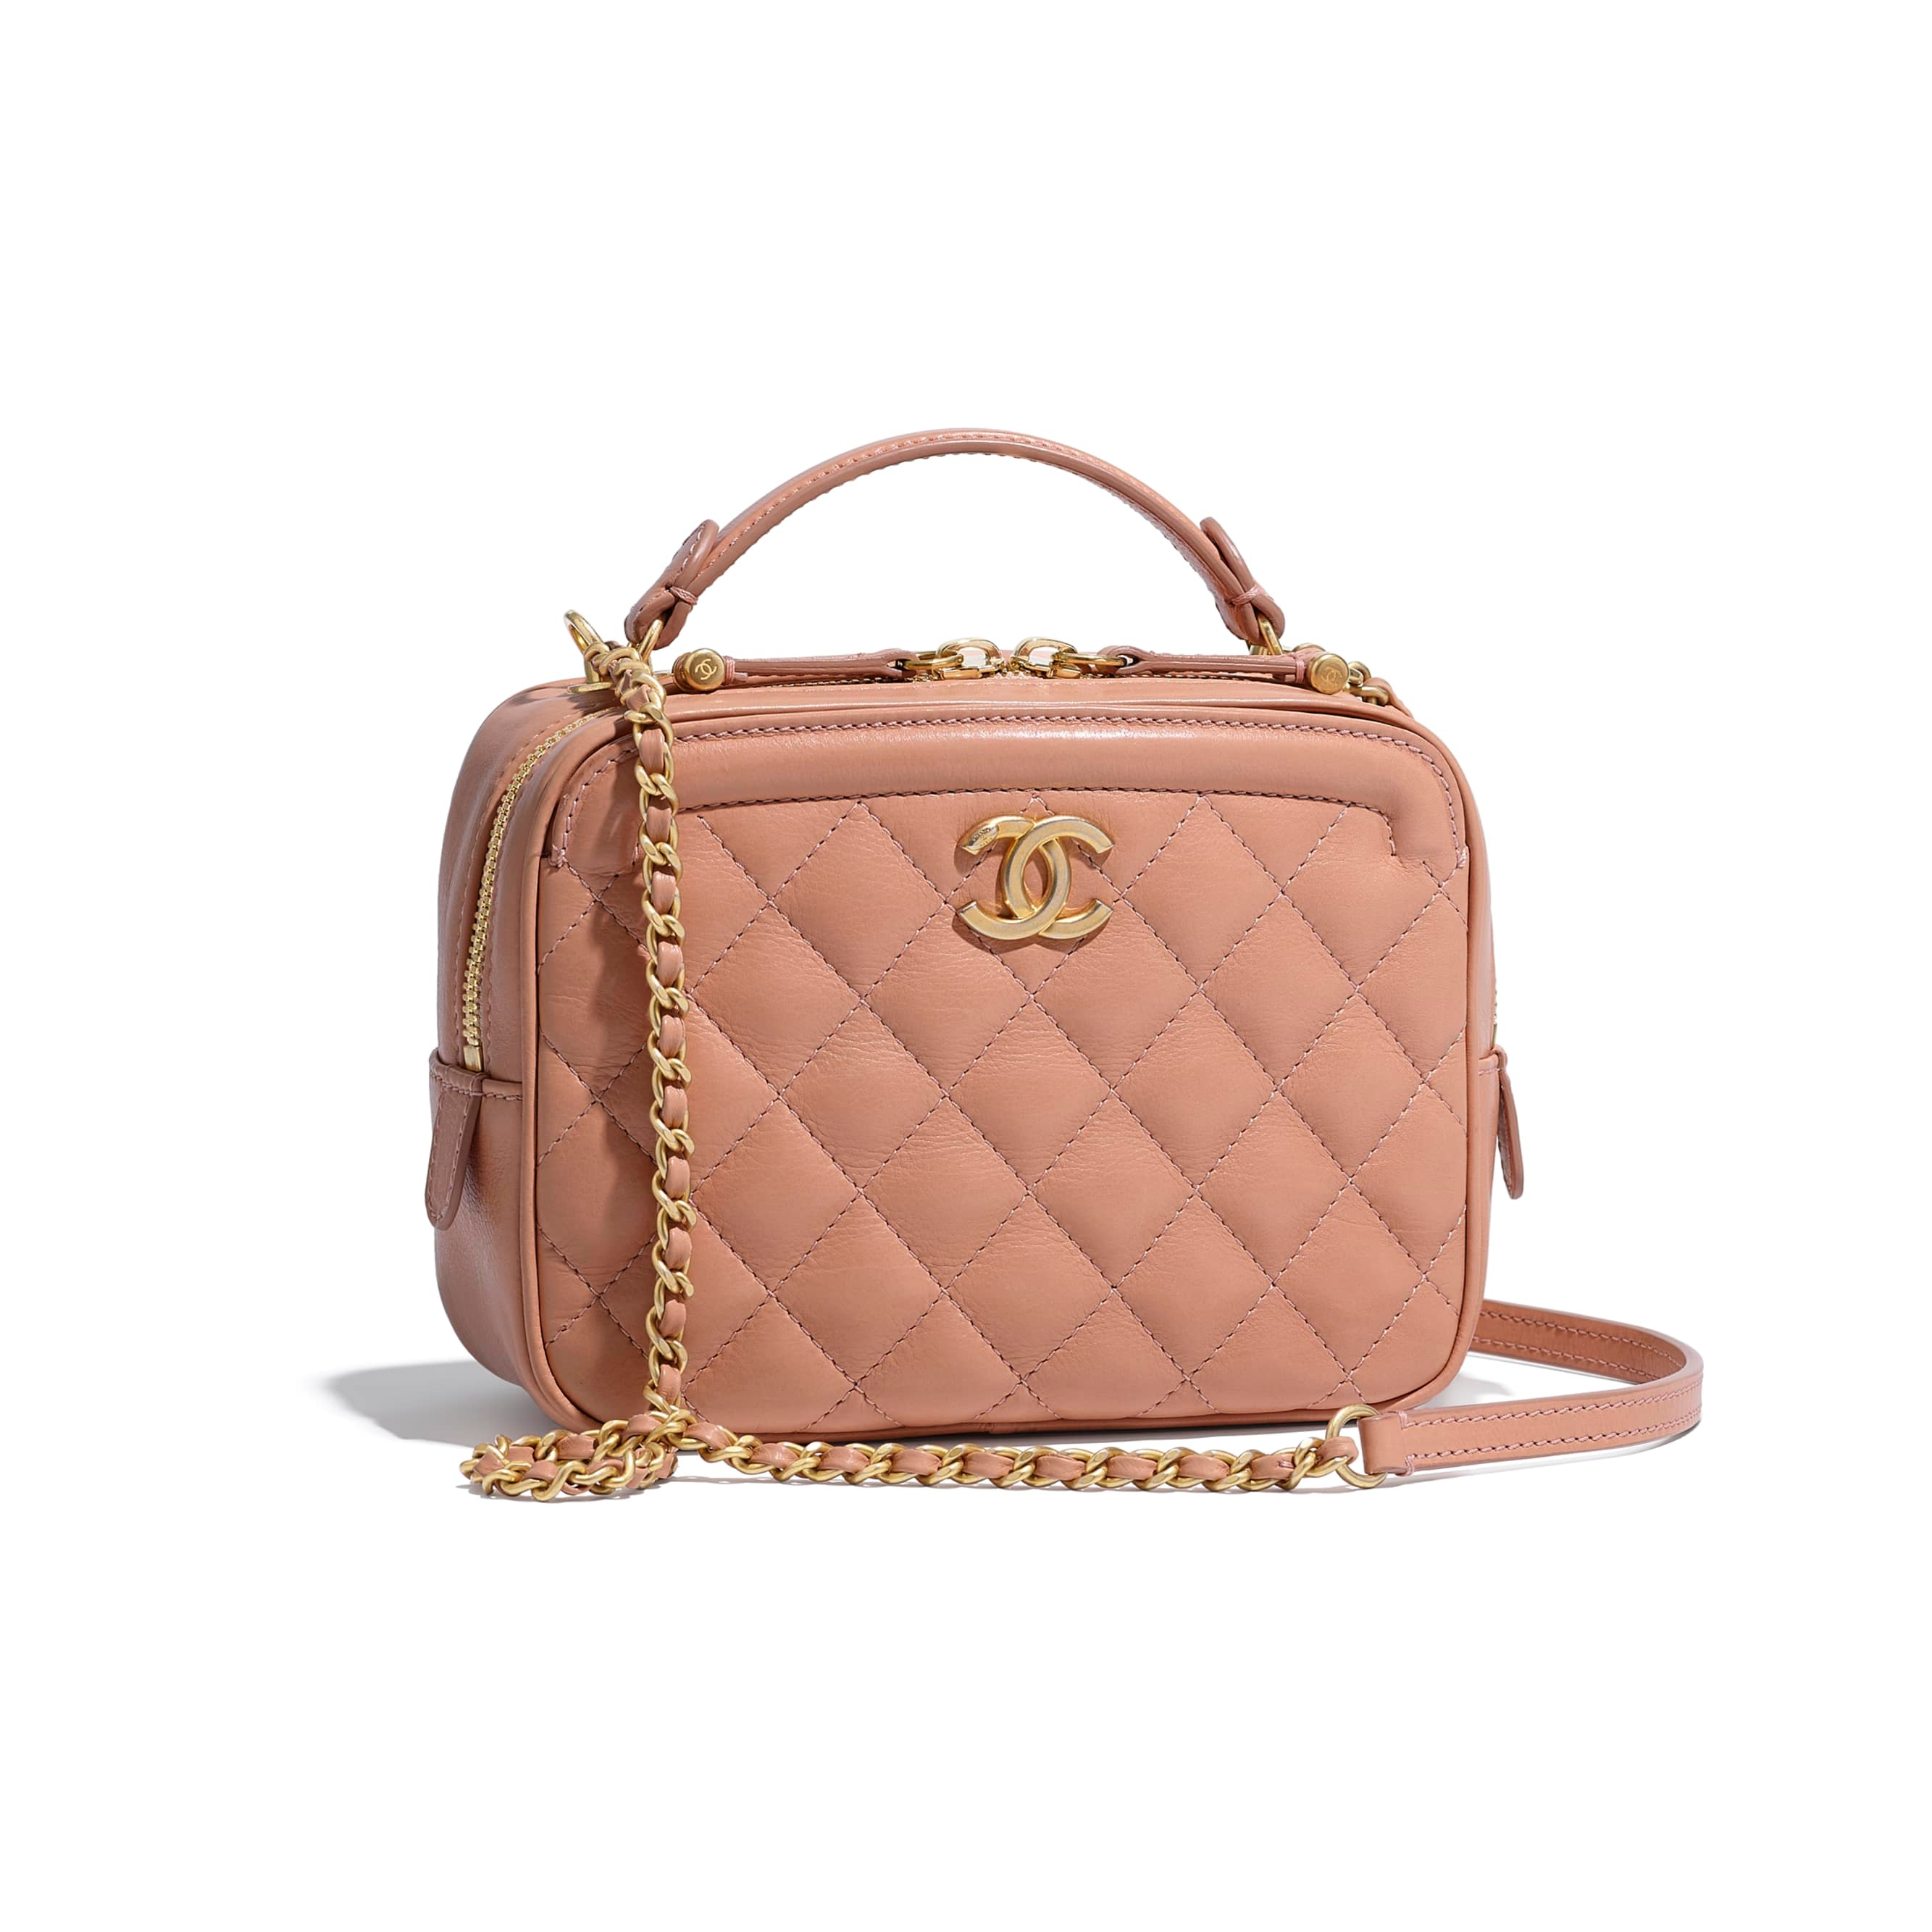 357d79ba165aa Chanel s New Bag Trend For 2019 Is Here — And It s Extra